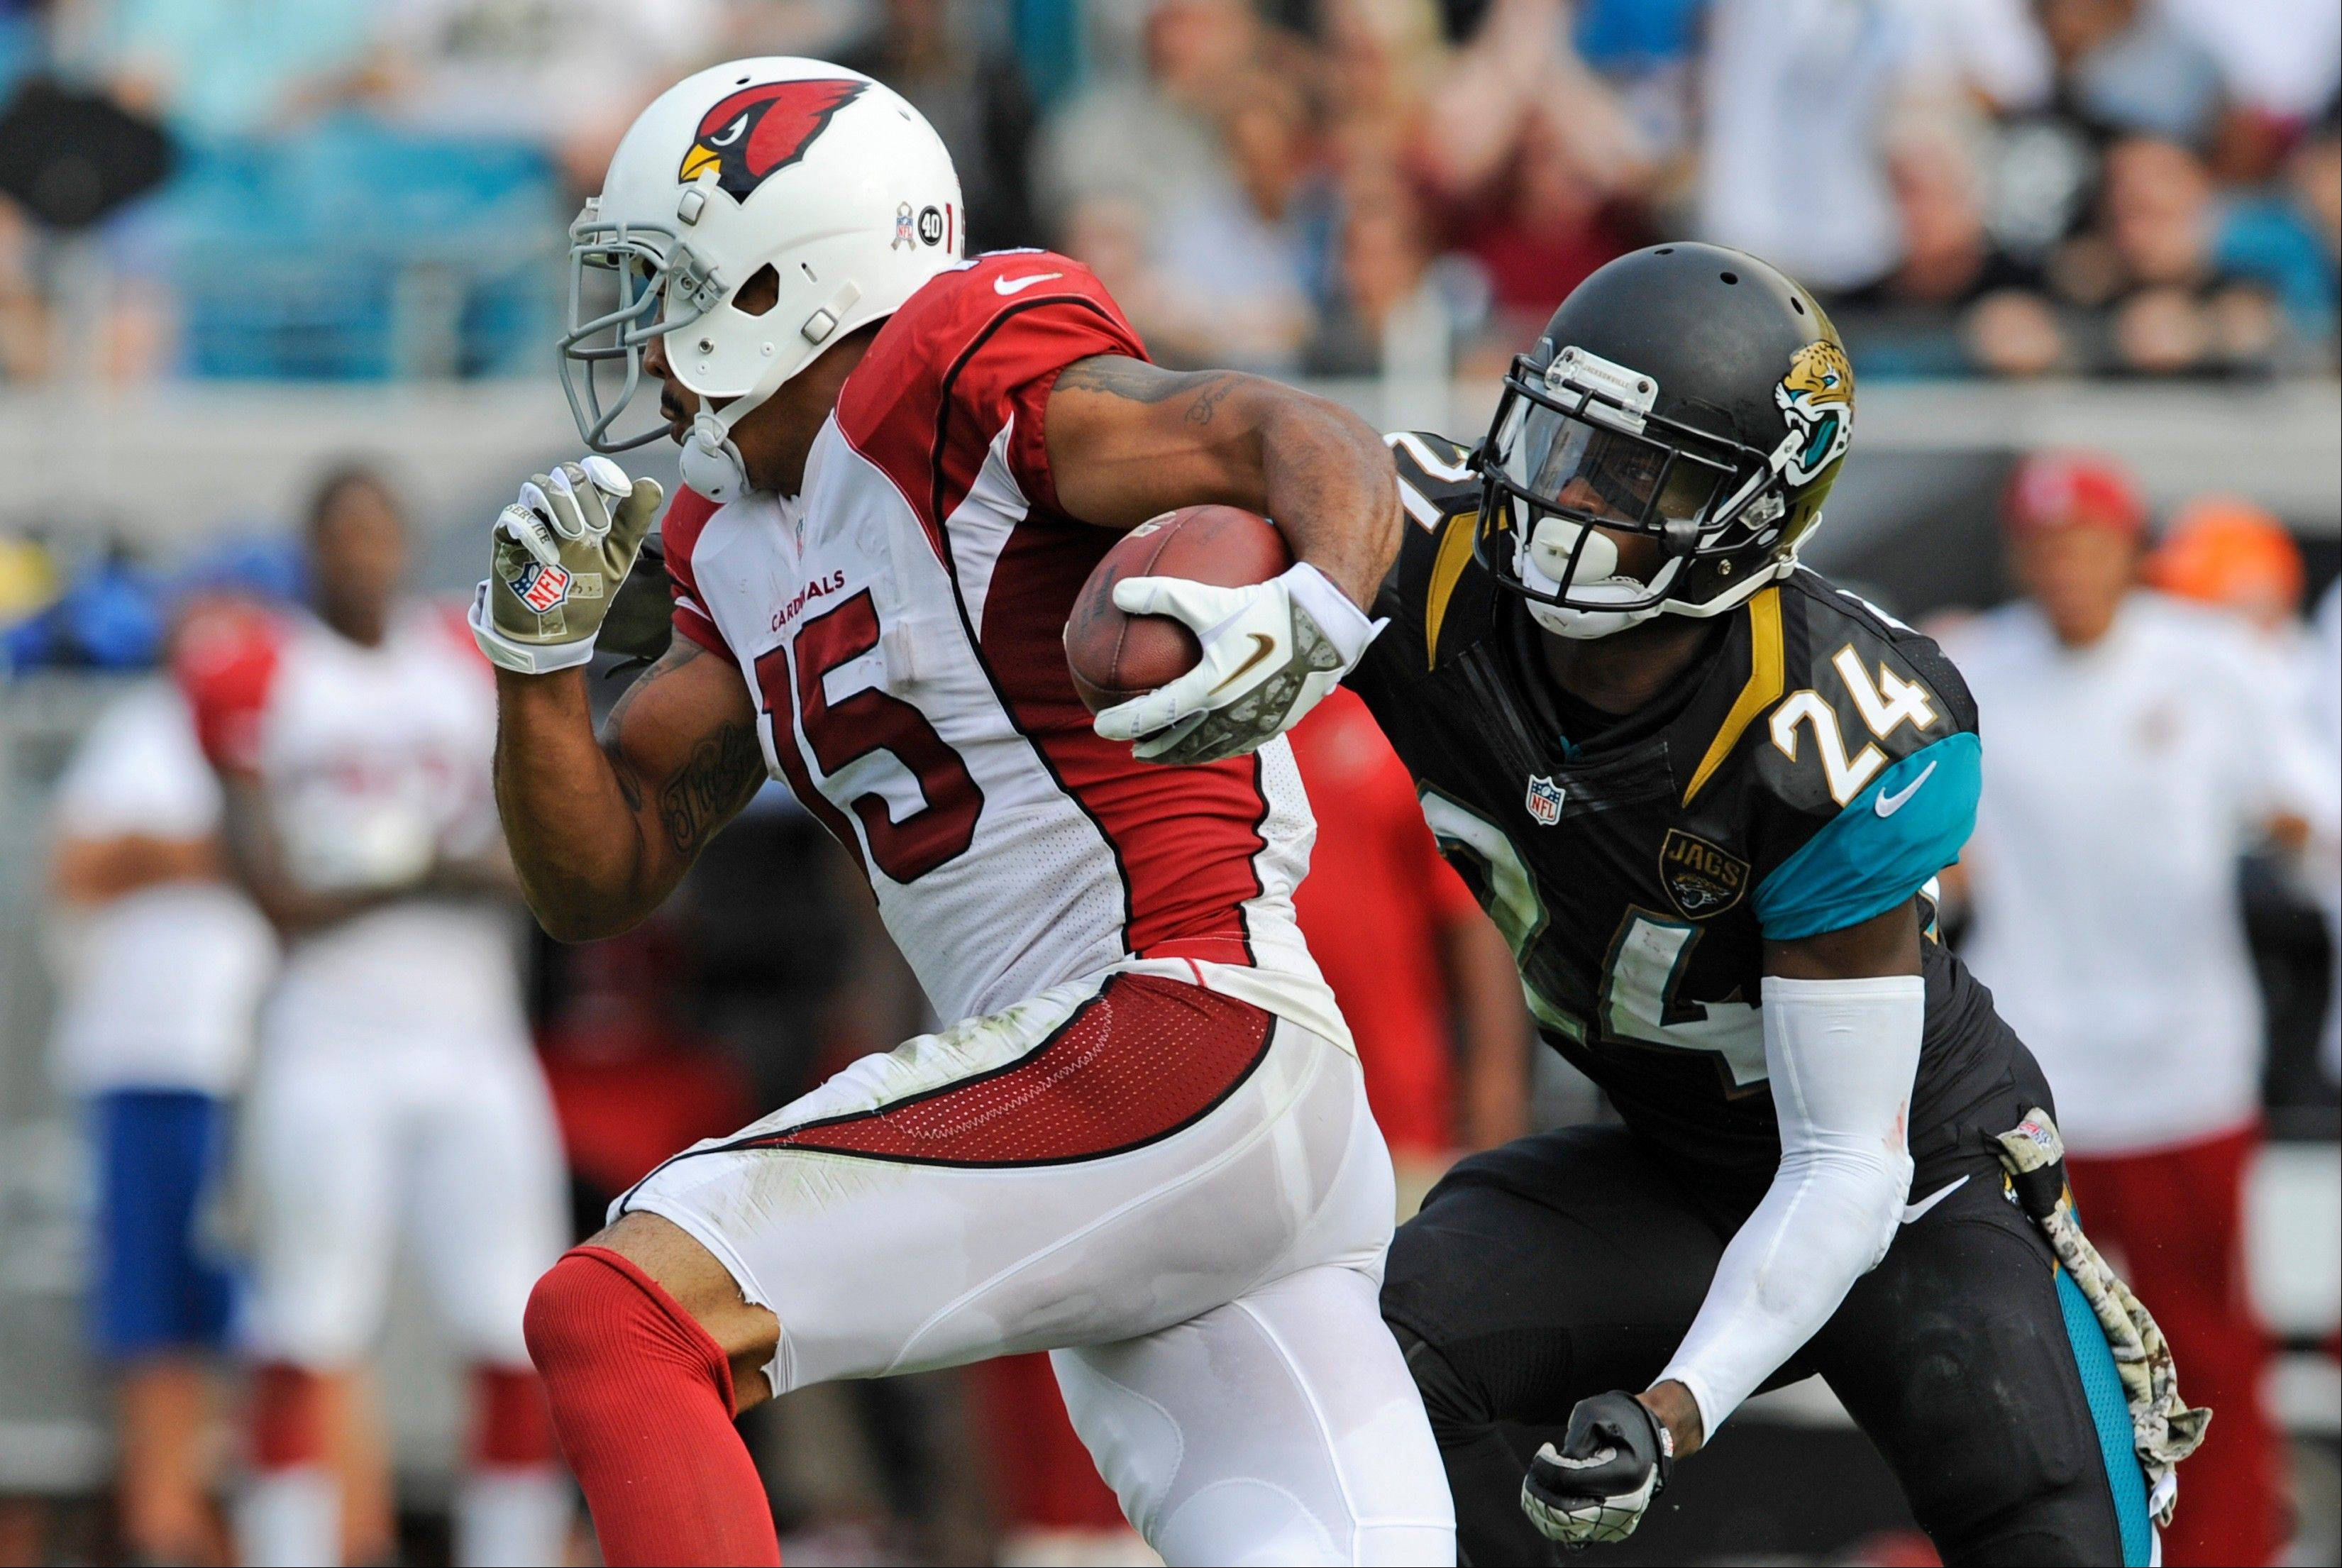 Arizona Cardinals wide receiver Michael Floyd (15) runs past Jacksonville Jaguars cornerback Will Blackmon (24) for a 91-yard touchdown in the second half of an NFL football game in Jacksonville, Fla., Sunday, Nov. 17, 2013.